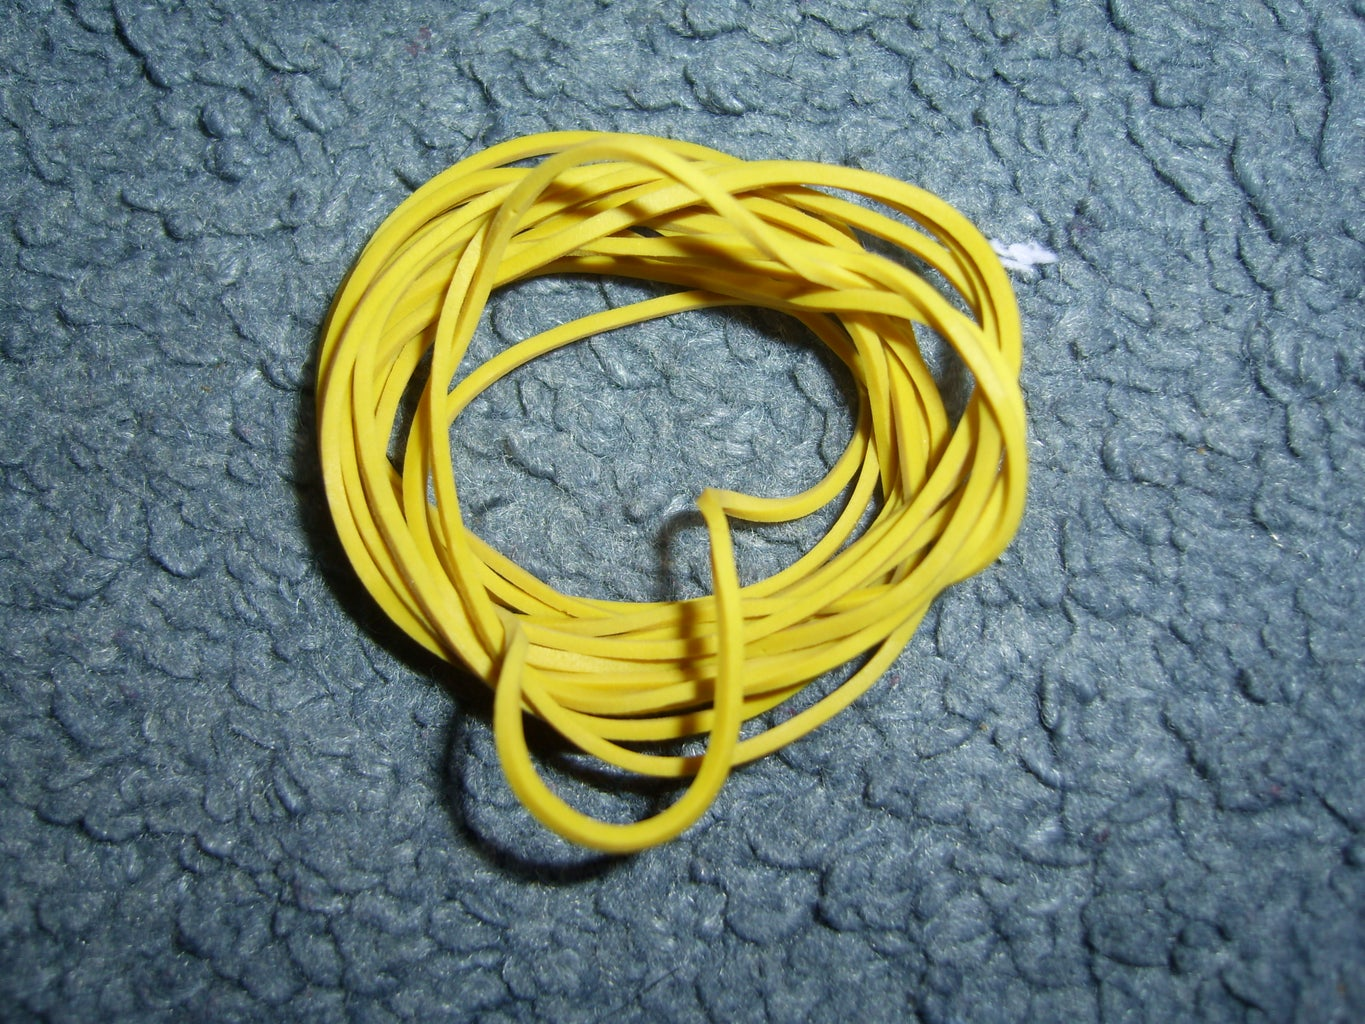 Elastic Bands and Ammo